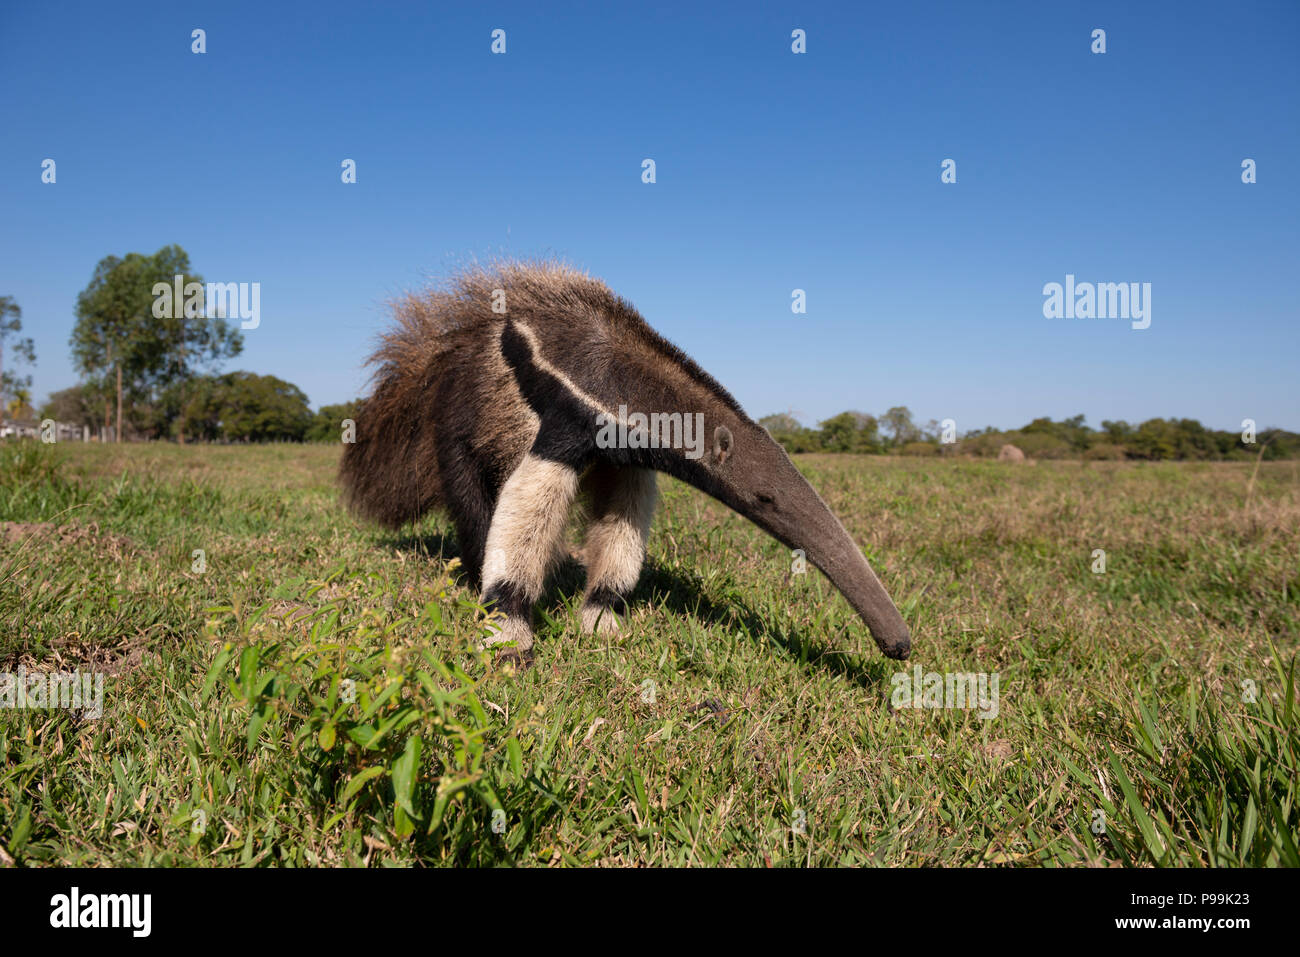 Starting to edit the photos from the South & North Pantanal Photo Tour 2018 completed yesterday. I'll start with this Giant Anteater, one of 27 that w - Stock Image